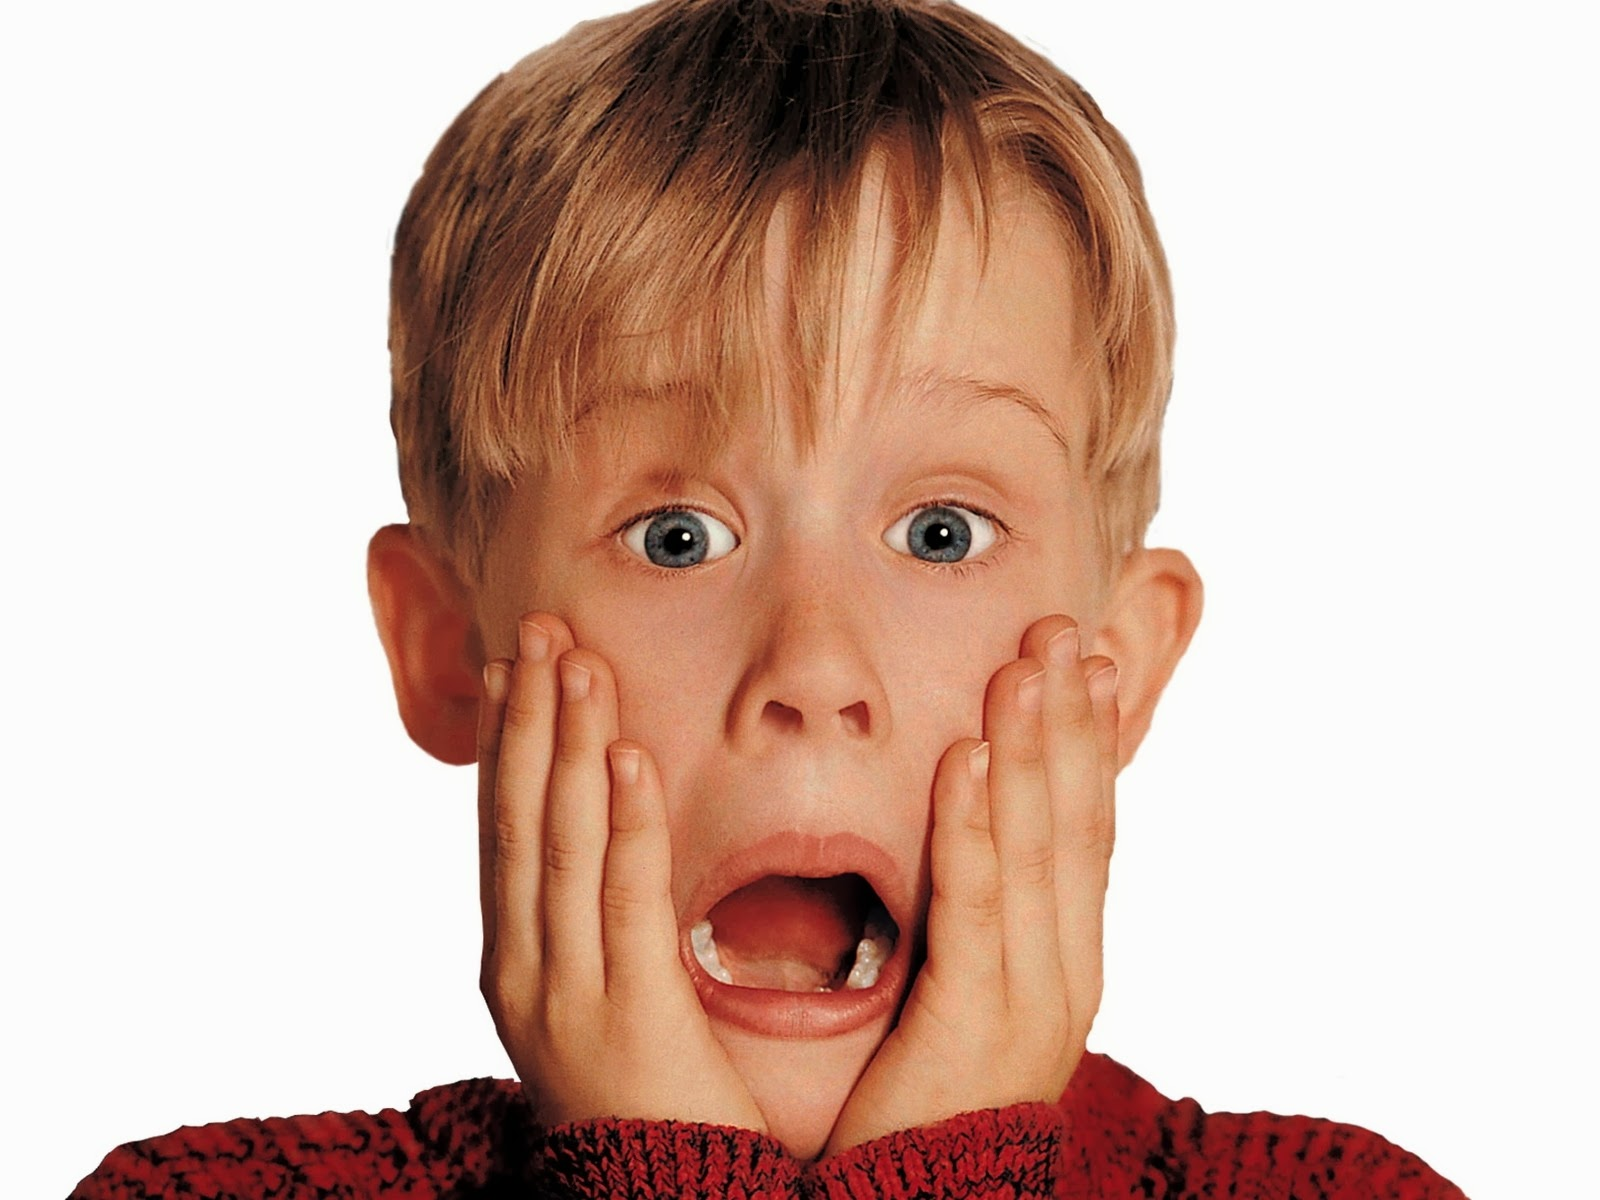 home_alone_macaulay_culkin_kevin_mccallister_boy_fear_shout_fright_346_1600x1200